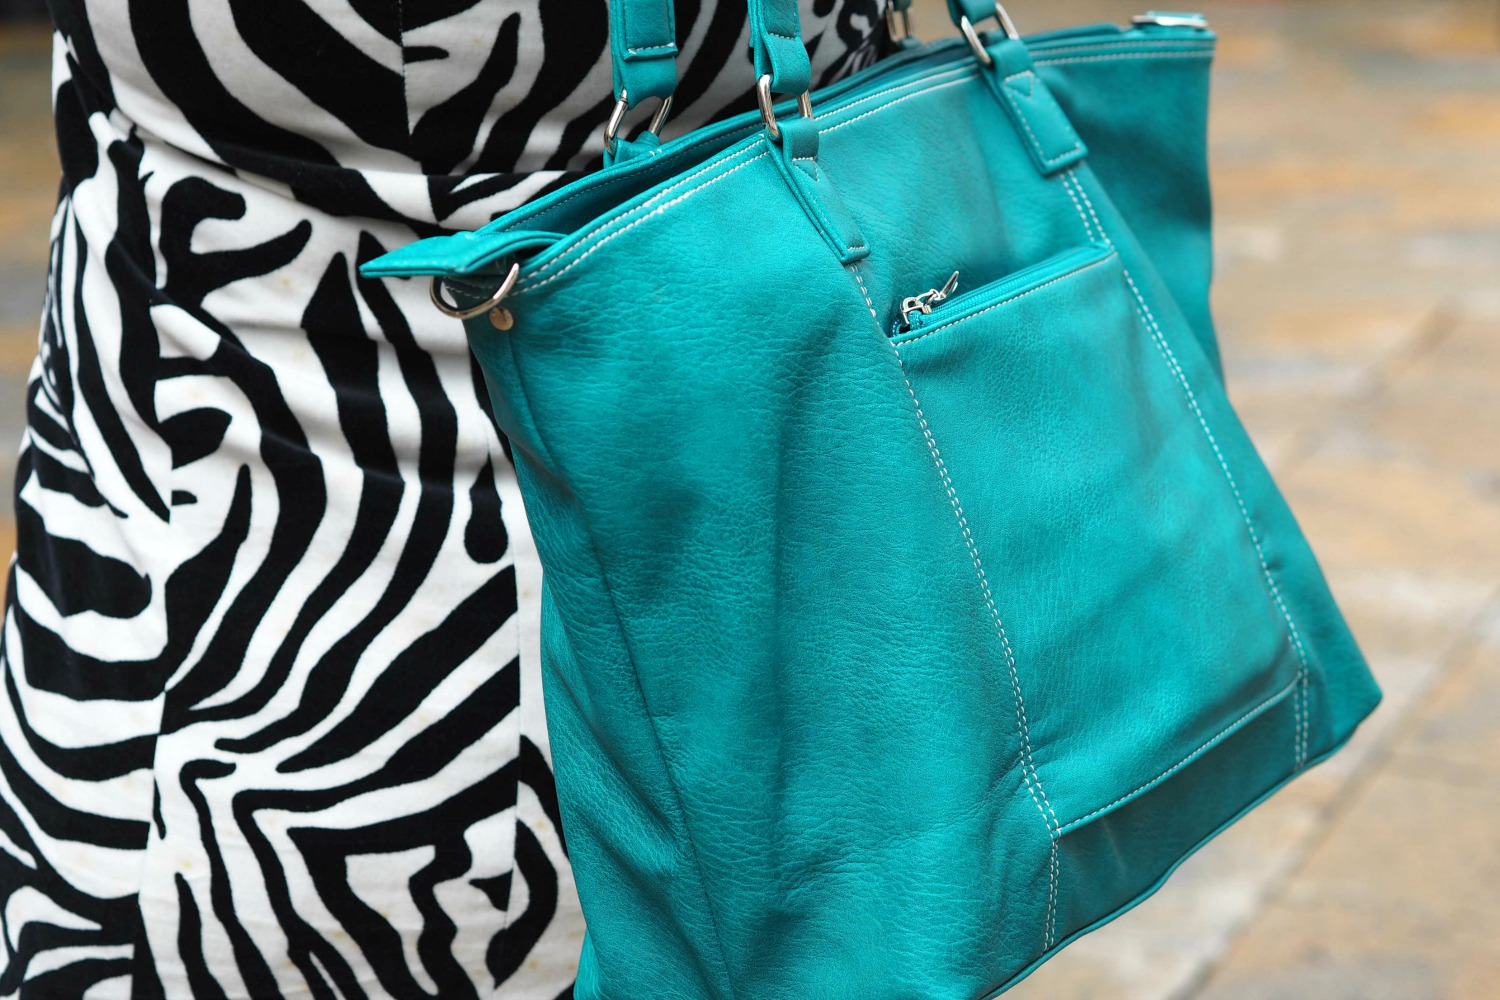 Detail of my zebra print coat, carrying my green Mini Jen bag while exploring in Italy - my Mia Tui hand luggage review